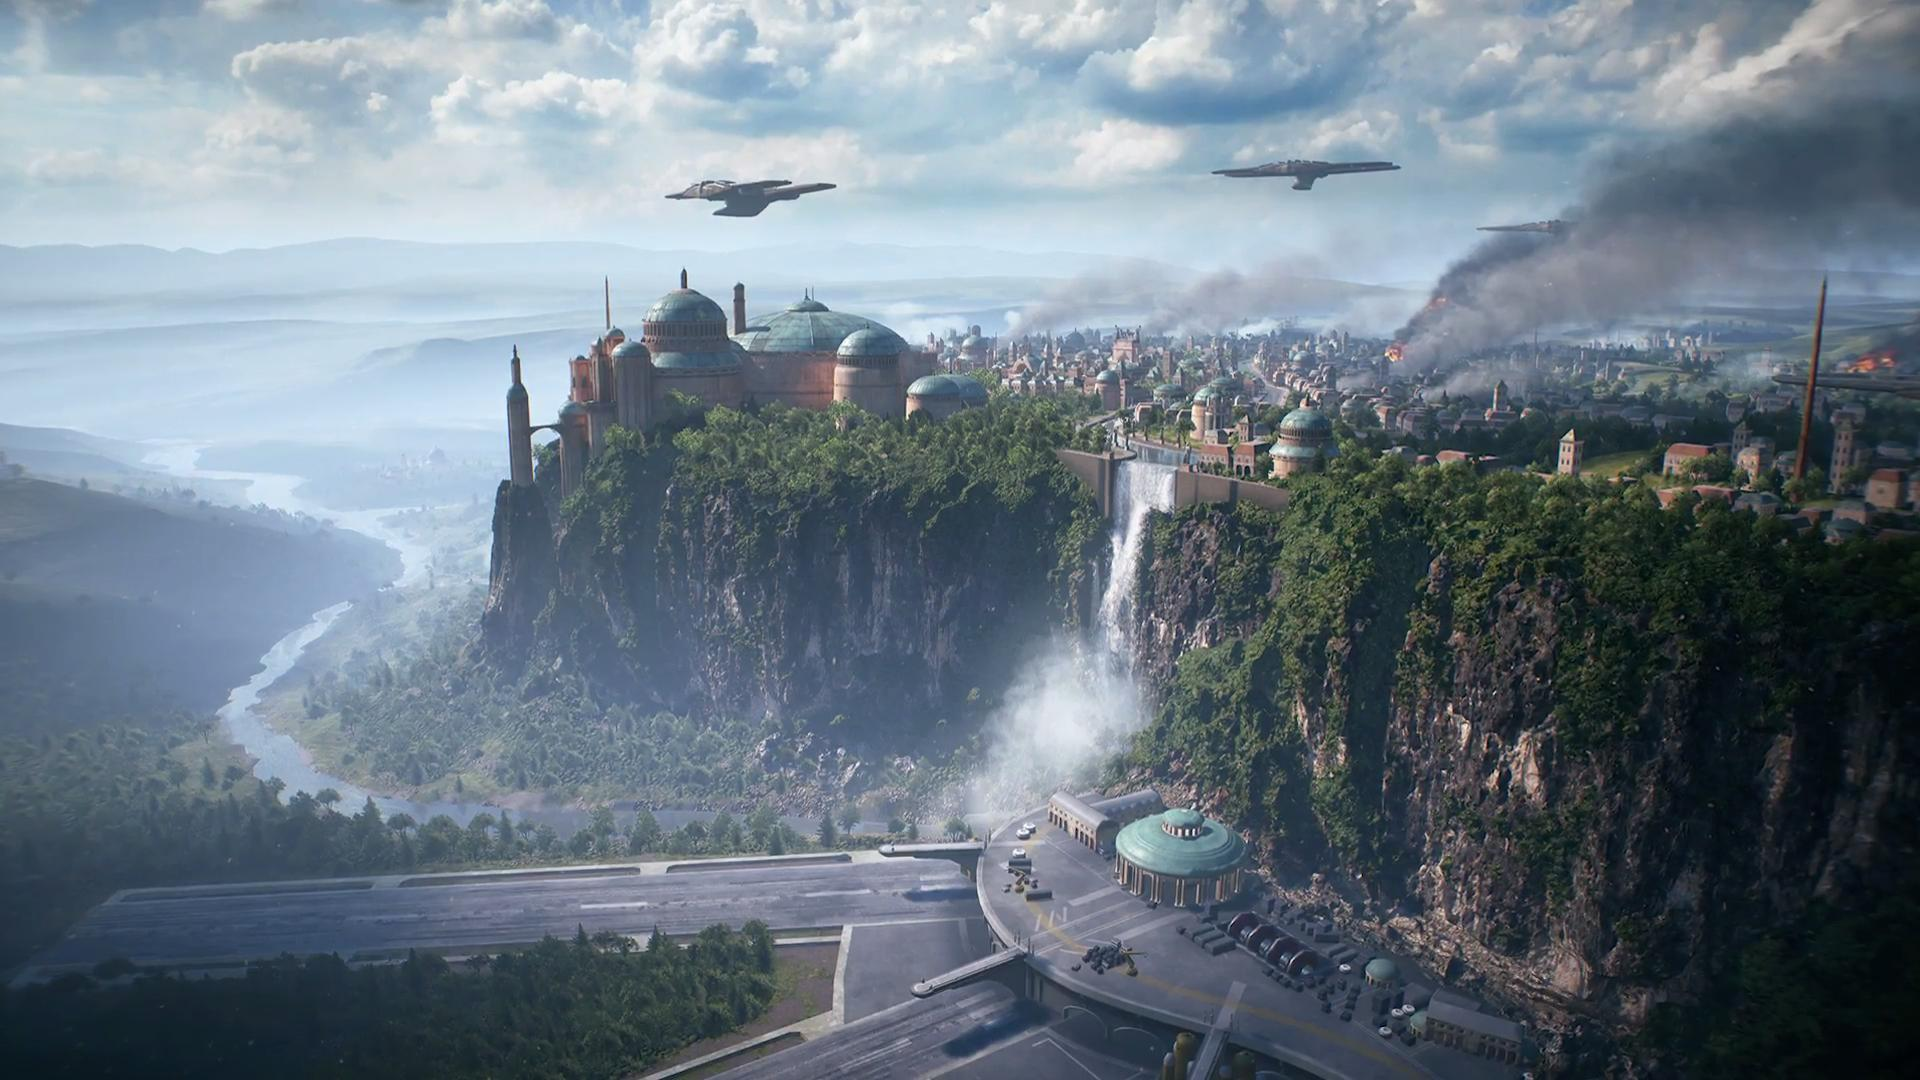 Star Wars Releases New Teaser Image For Battlefront 2 Featuring Naboo Map